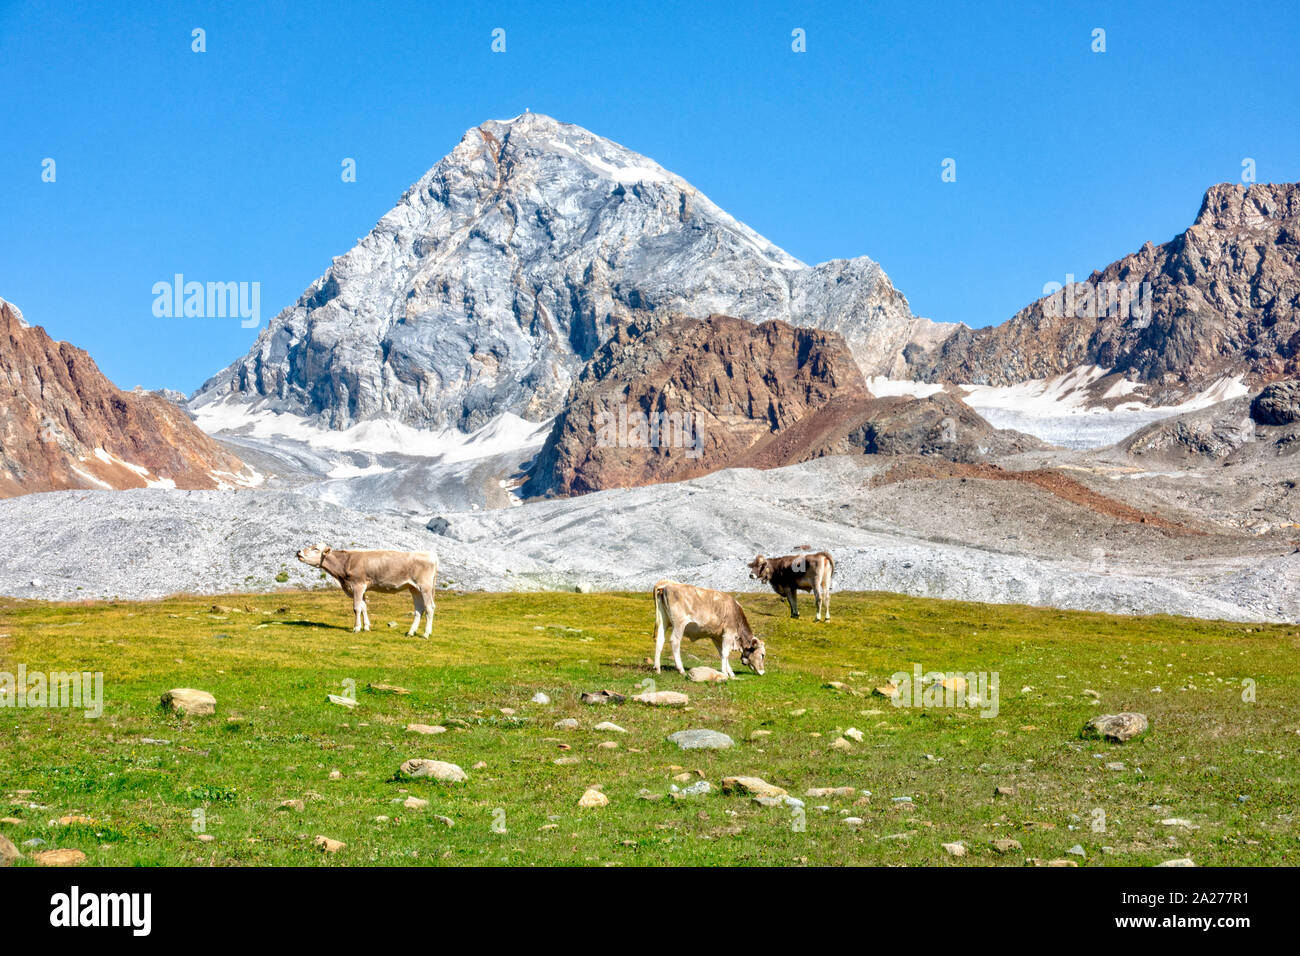 Famous Ortler mountain with a rock called Koenigsspitze at South Tyrol, Italy. Cows grazing in the foreground. Stock Photo